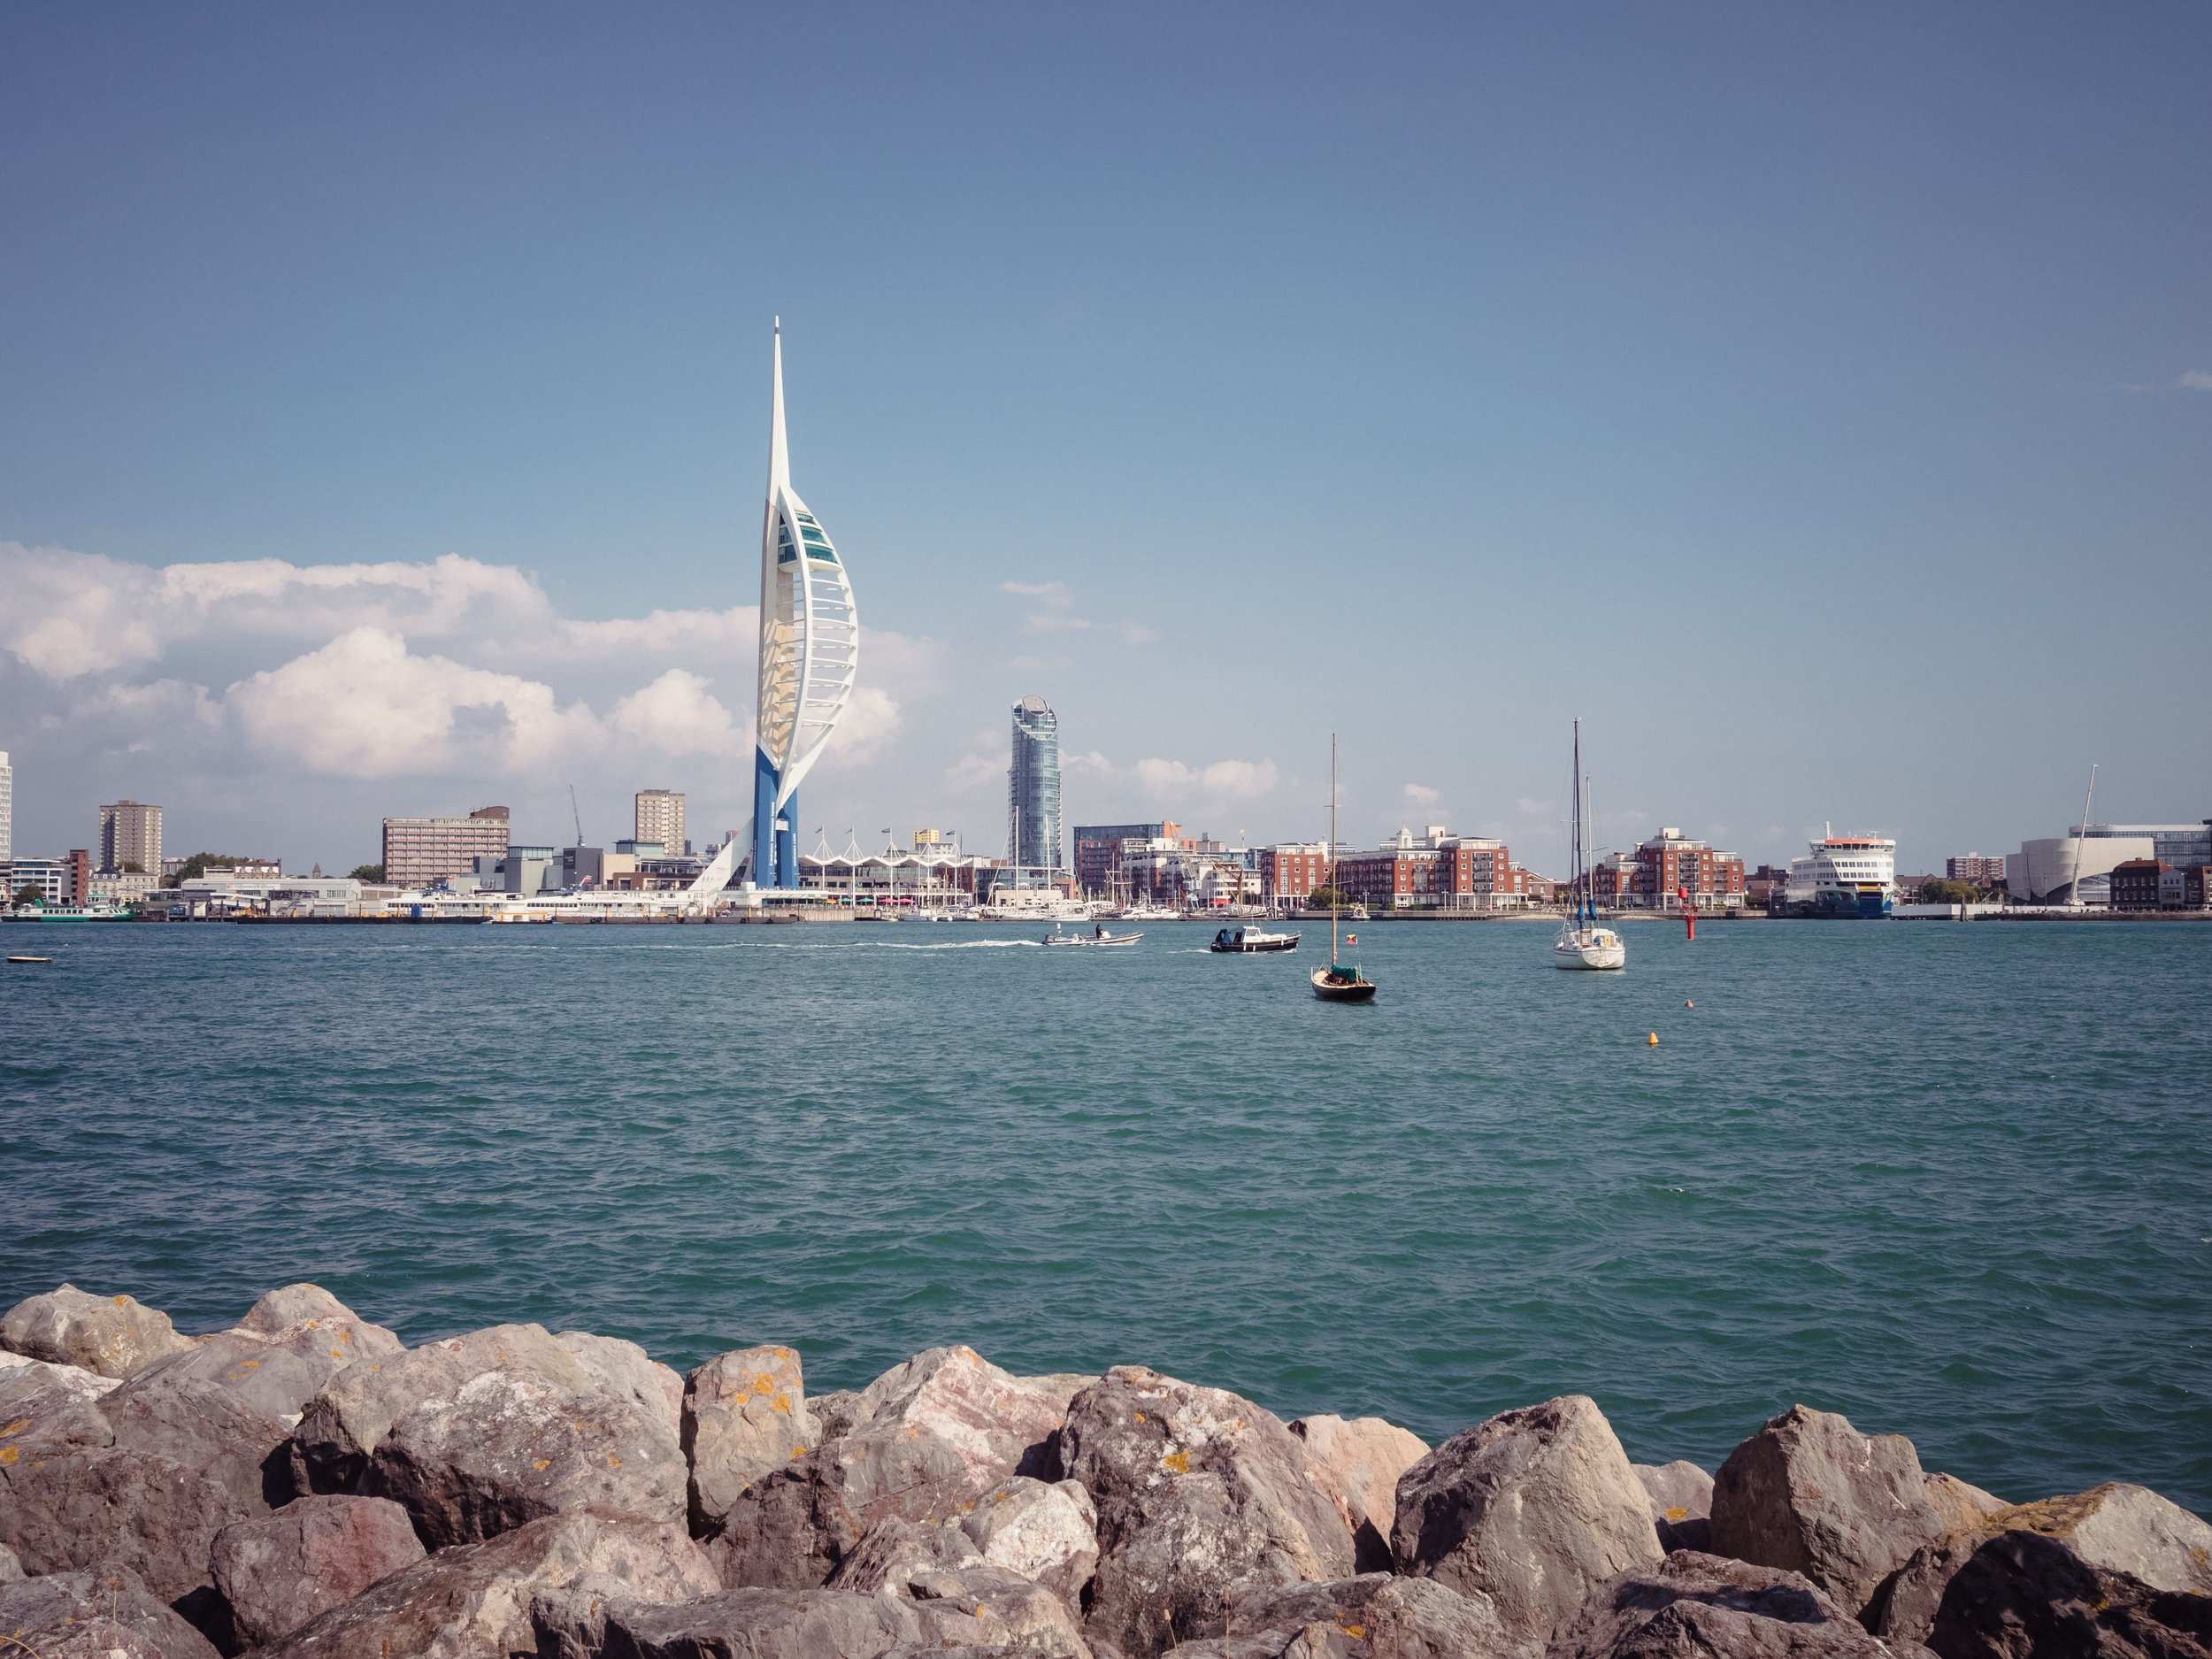 The view of Portsmouth and its Spinnaker Tower from across the harbour in Gosport.